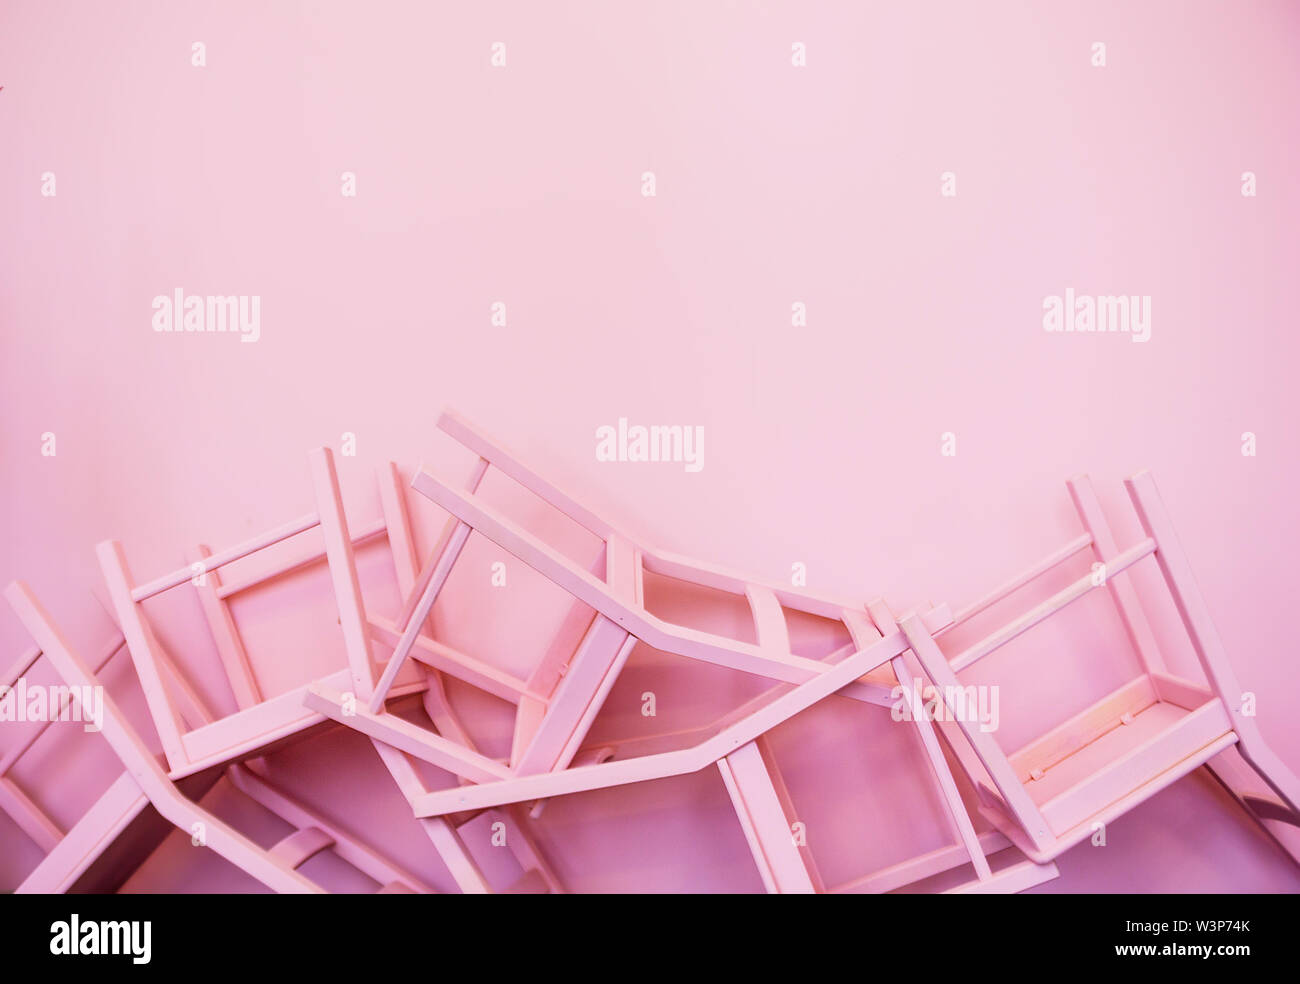 Many pink chairs upside down against the background of a pink wall Stock Photo